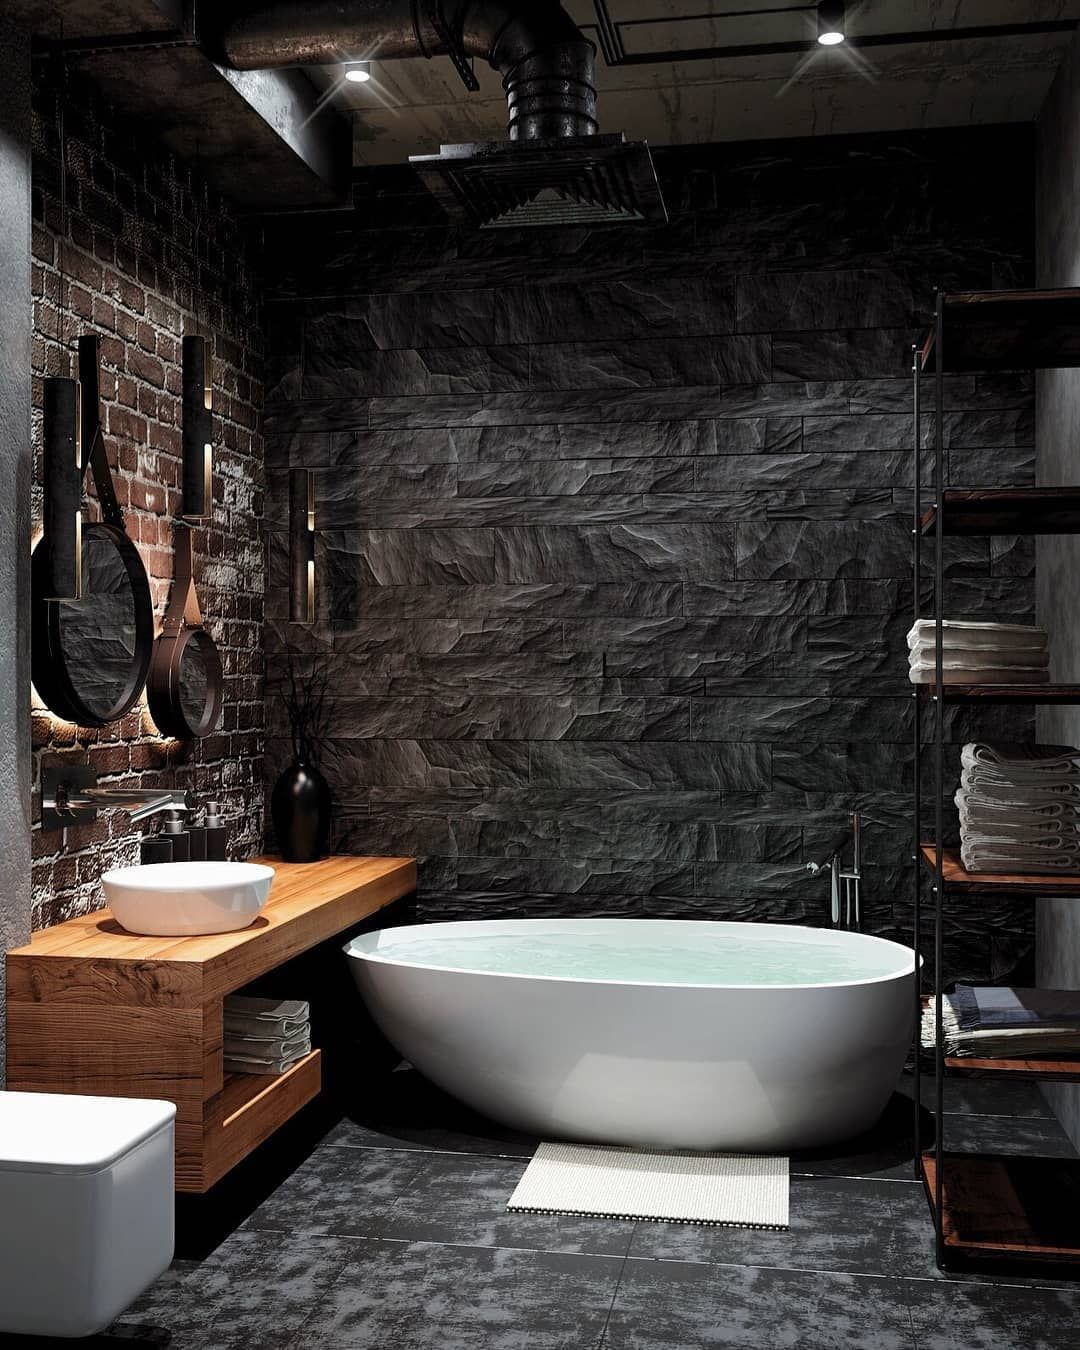 I Liked The Dark Finish Of This Bathroom Do You Like It Too حبيت هاللون Top Bathroom Design Industrial Bathroom Design Bathroom Design